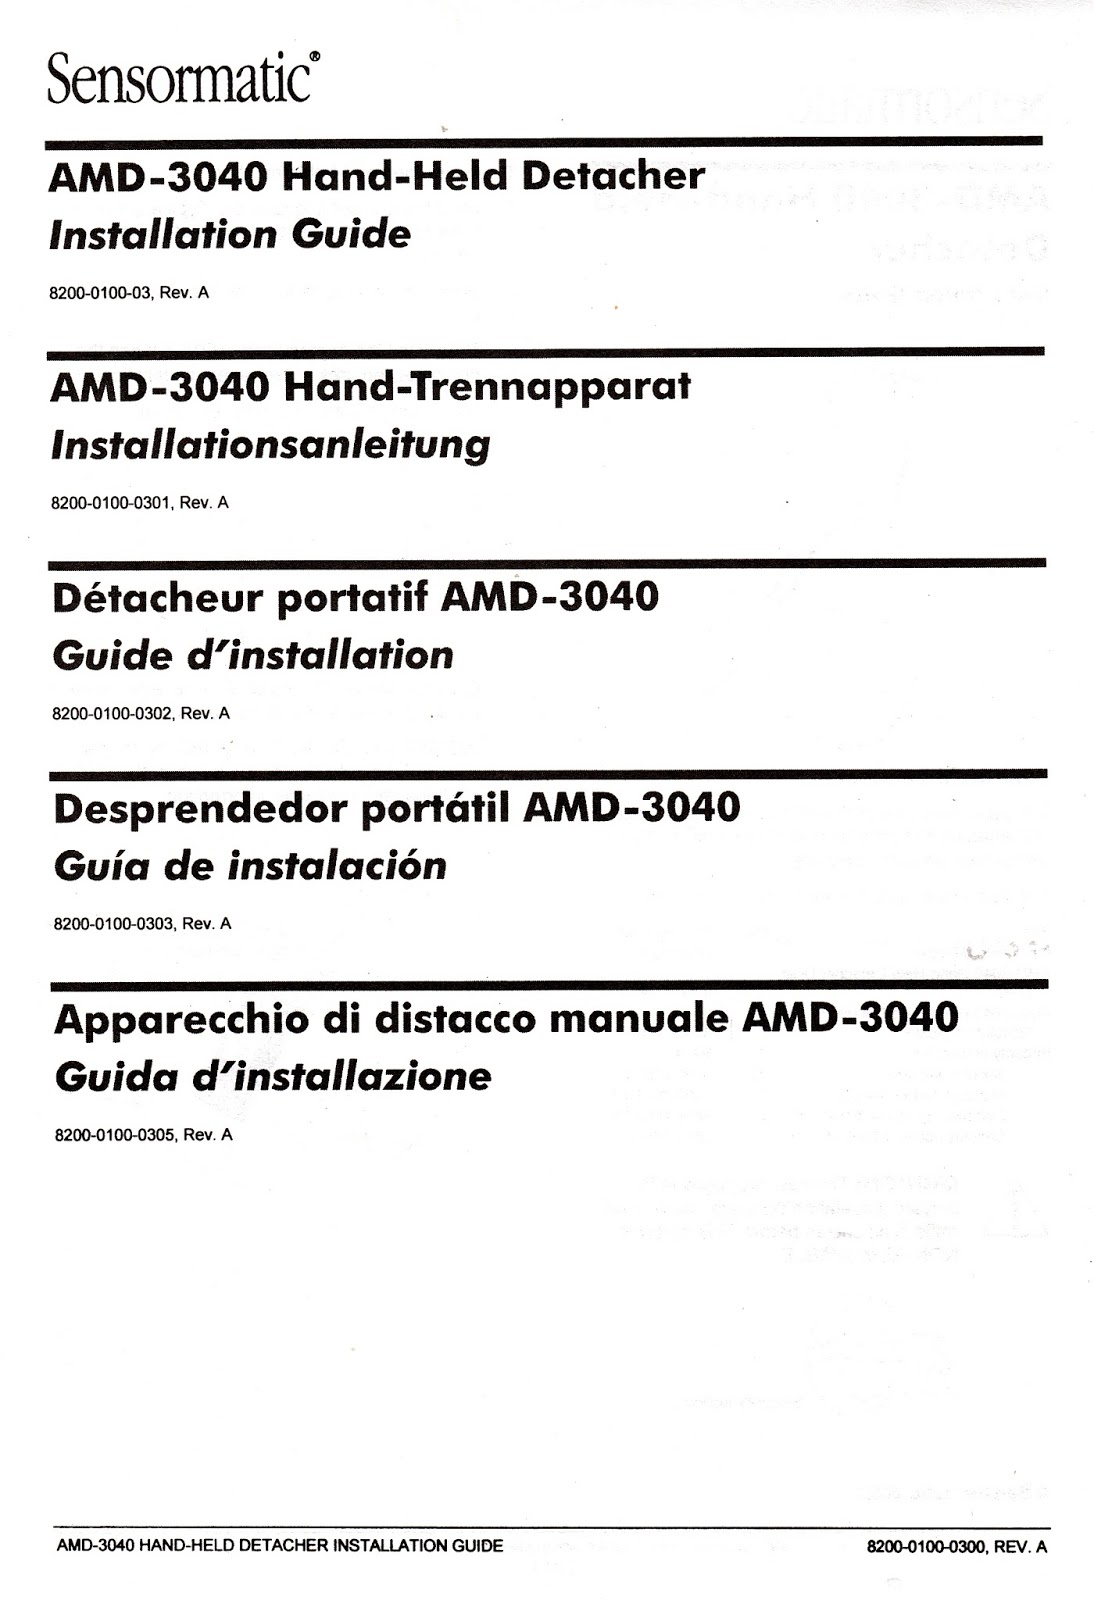 Manual Book : Sensormatic AMD-3040 Hand Detacher